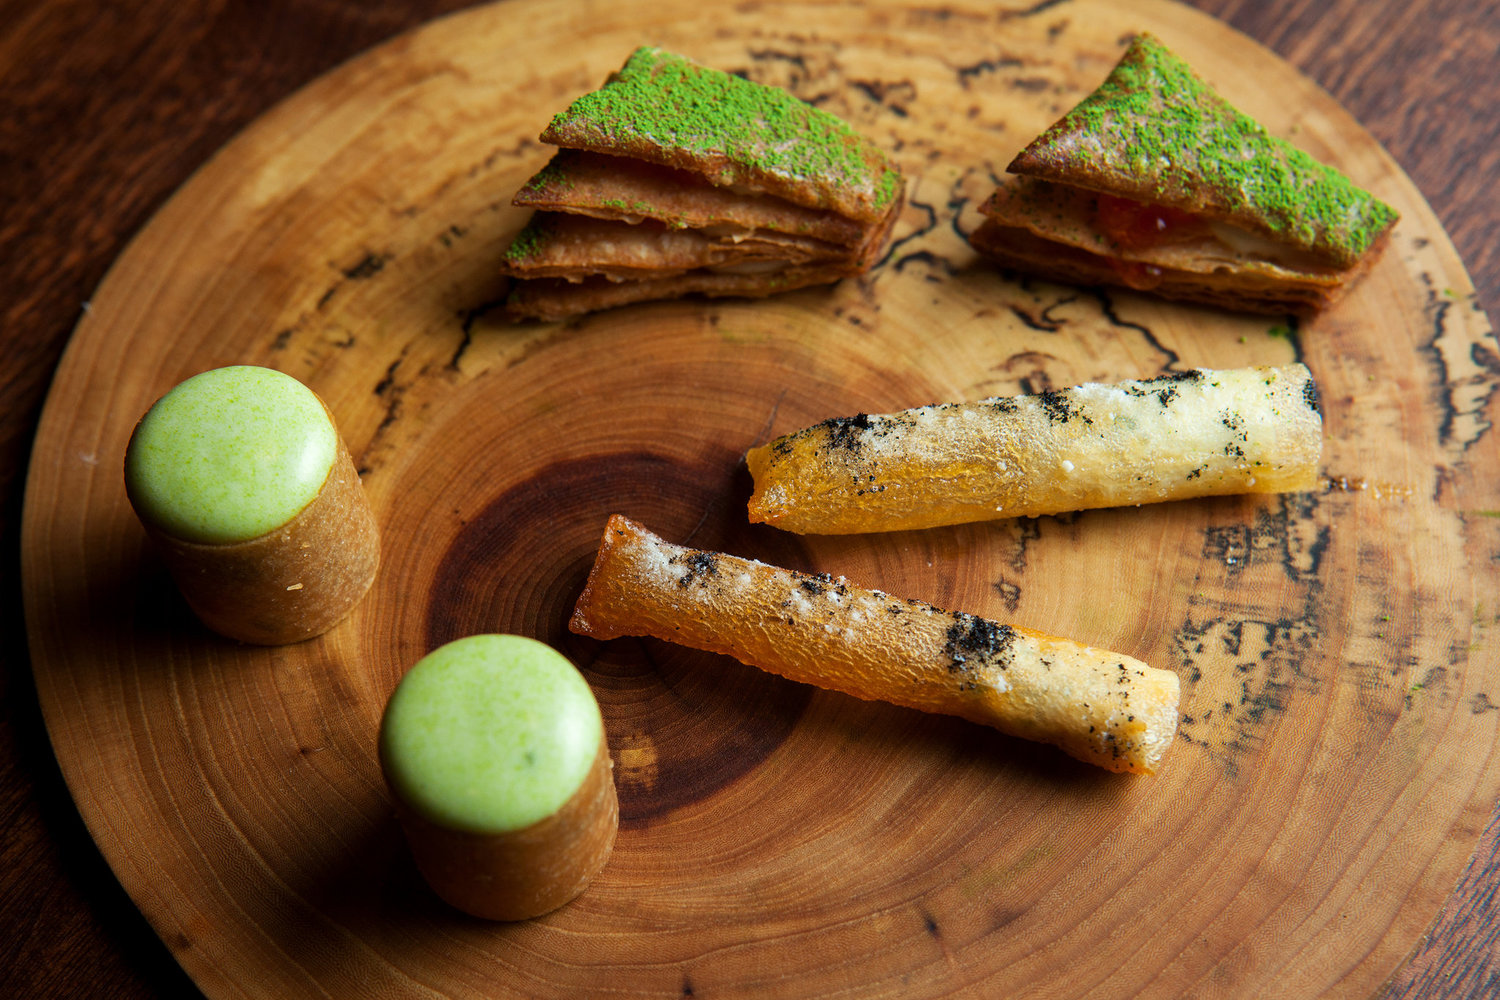 Momofuku Ko moved to an alleyway off East First Street earlier this year. One-bite mille-feuille, whose crisp layers of rye pastry sprinkled with green tea powder hold lush béchamel and briny little globes of trout roe, are shown with pommes soufflé and lobster paloise.